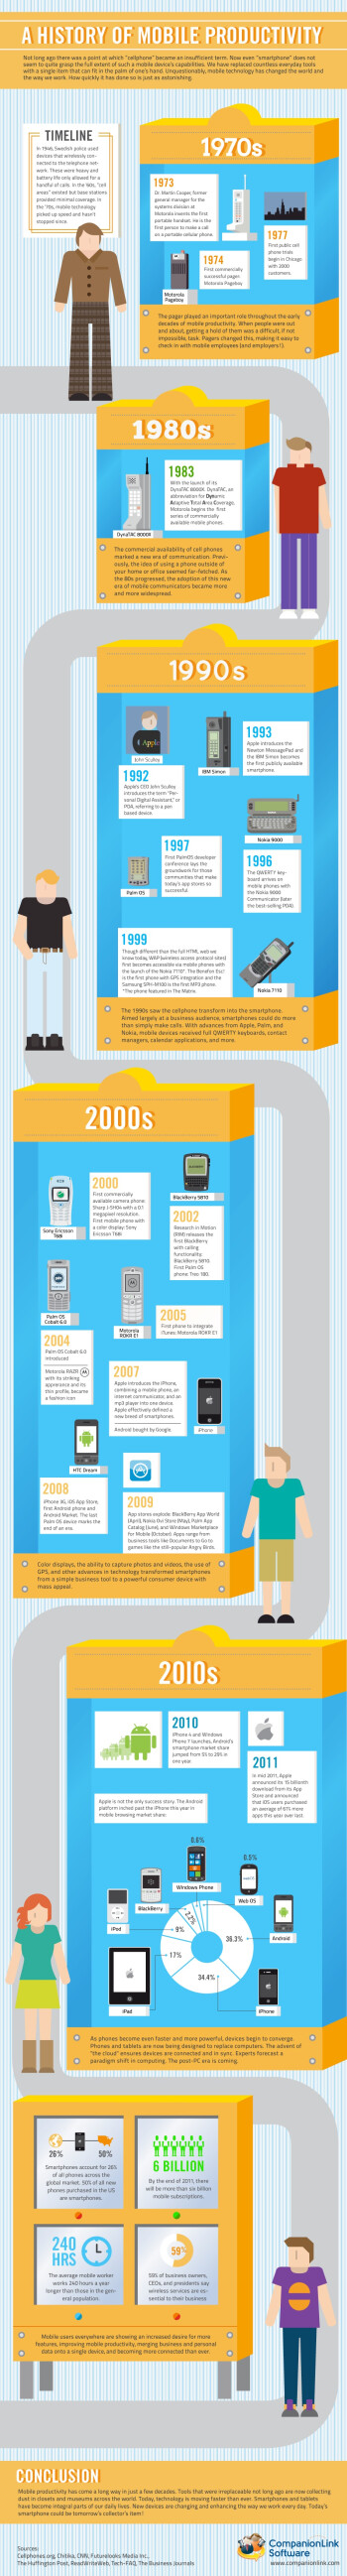 Take a trip through the history of mobile productivity with this infographic